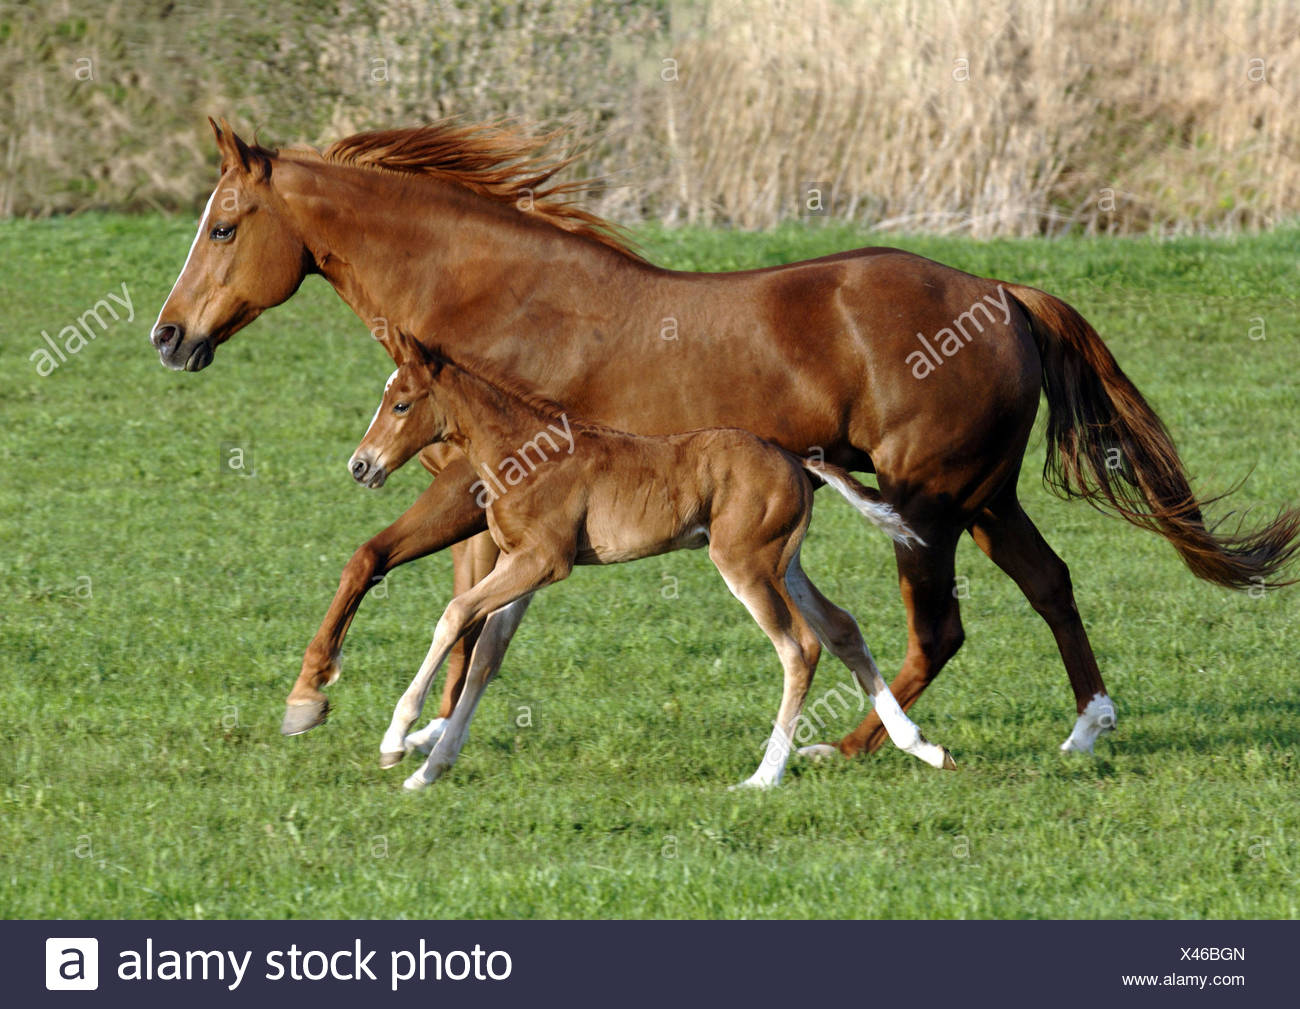 Paddock, mare, foal, run, animals, horses, Quarter, young animal, colt, mother animal, motion, motor activity, keeping of pets, horse breeding, horse's race, thoroughbred horses, mammals, benefit animals, horse's position, warm blood, outlet, at the side, - Stock Image